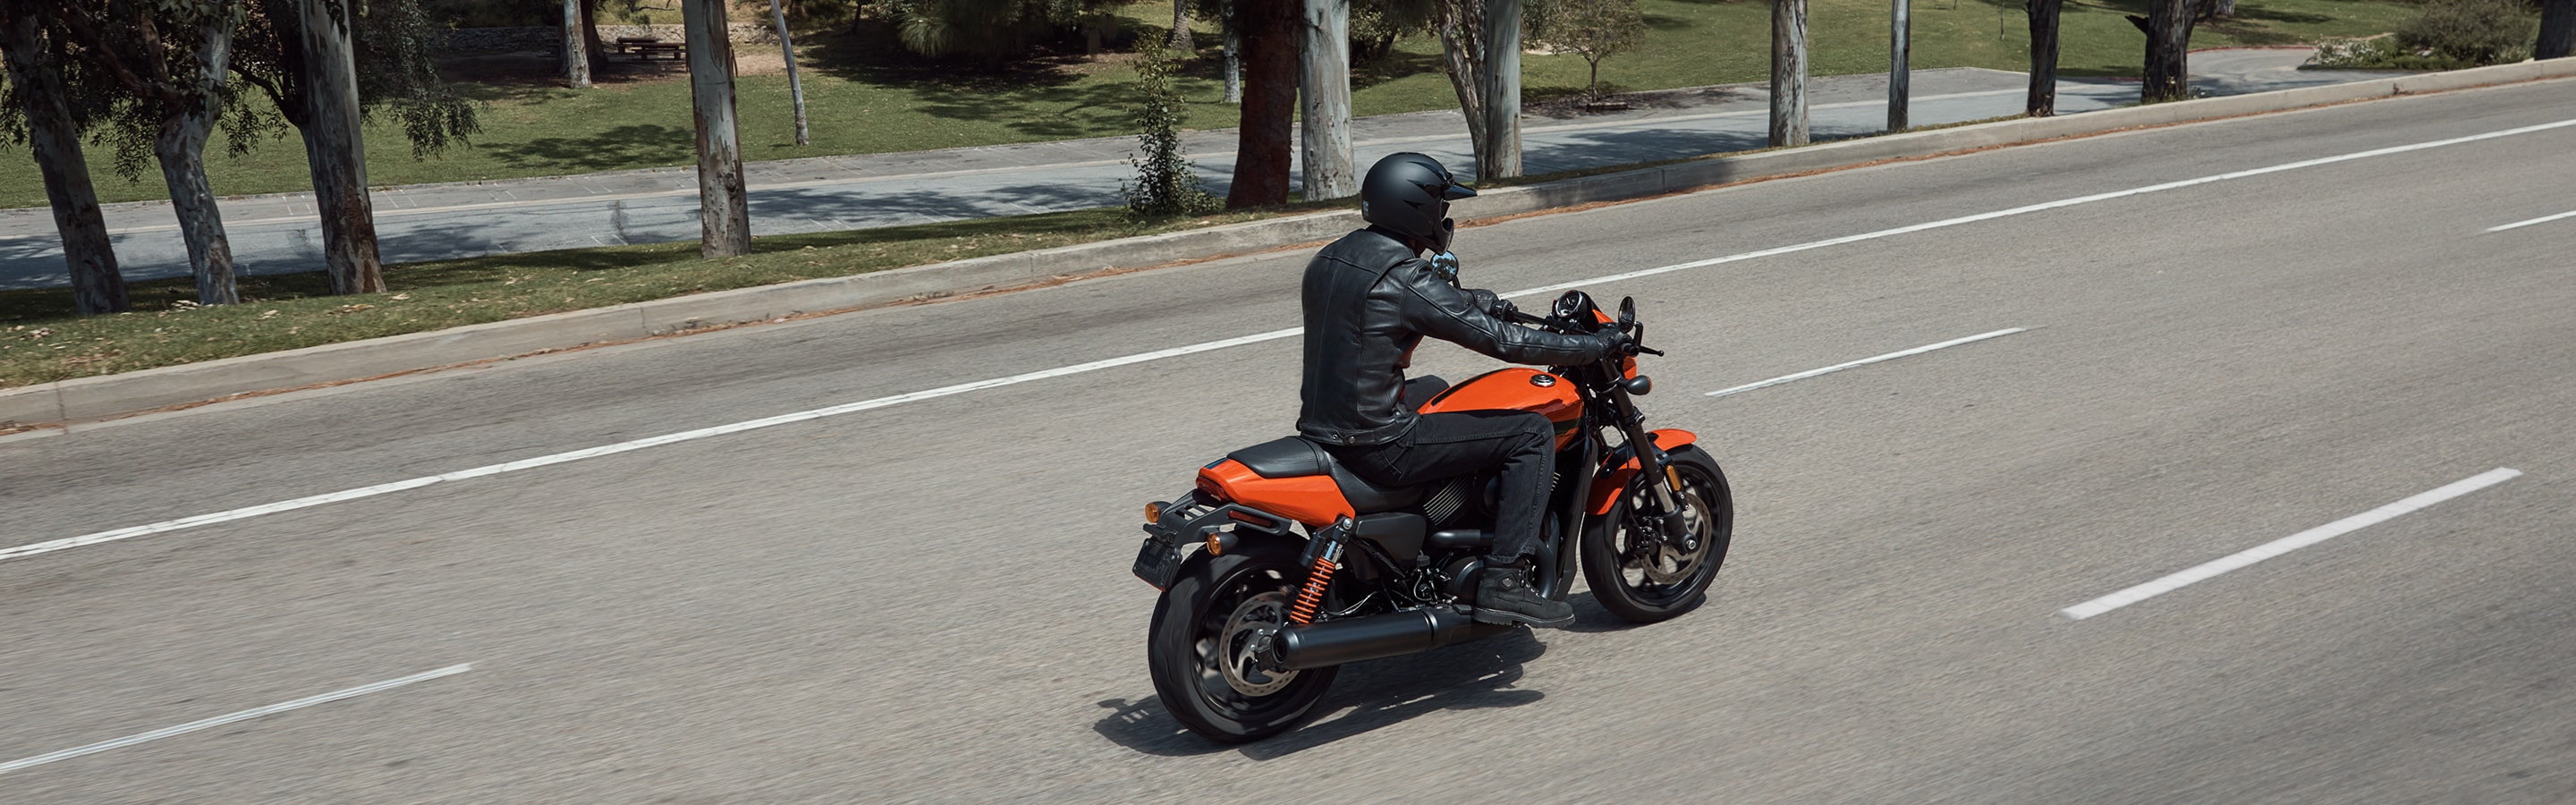 Man on a 2020 Street  H-D motorcycle standing at traffic lights